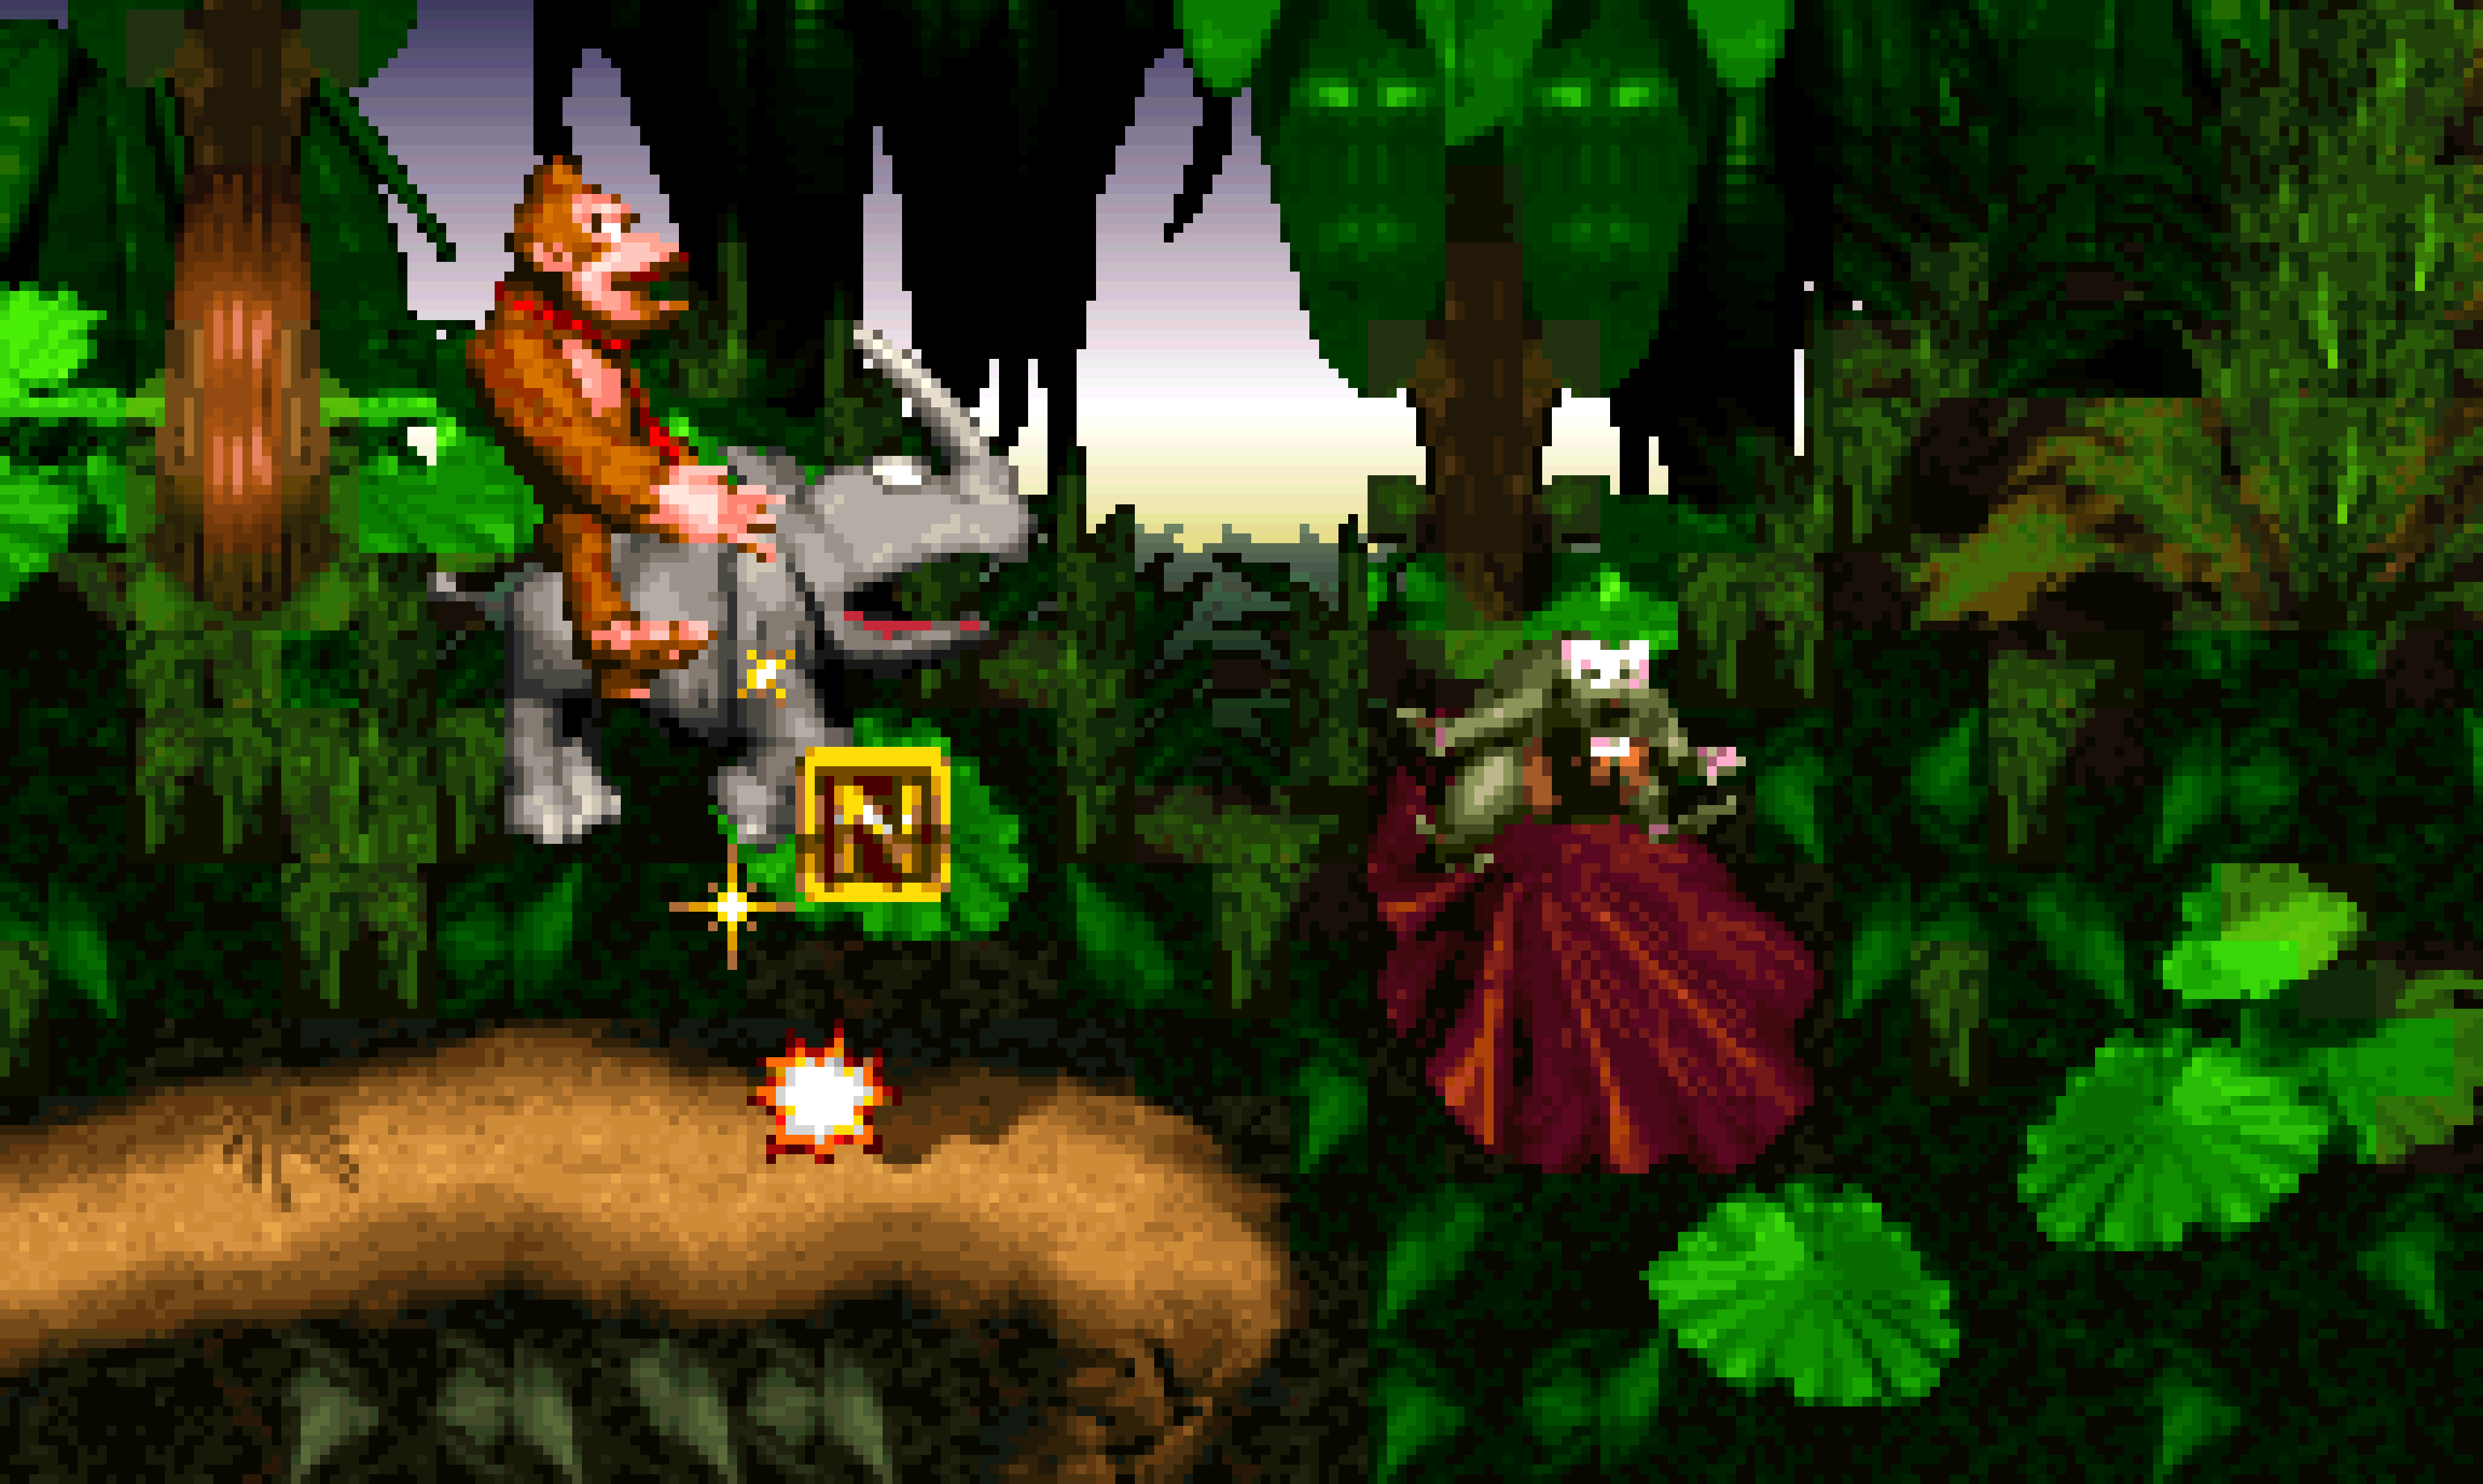 Kicking fuck out of a critter with the help of a rhino in Donkey Kong Country.